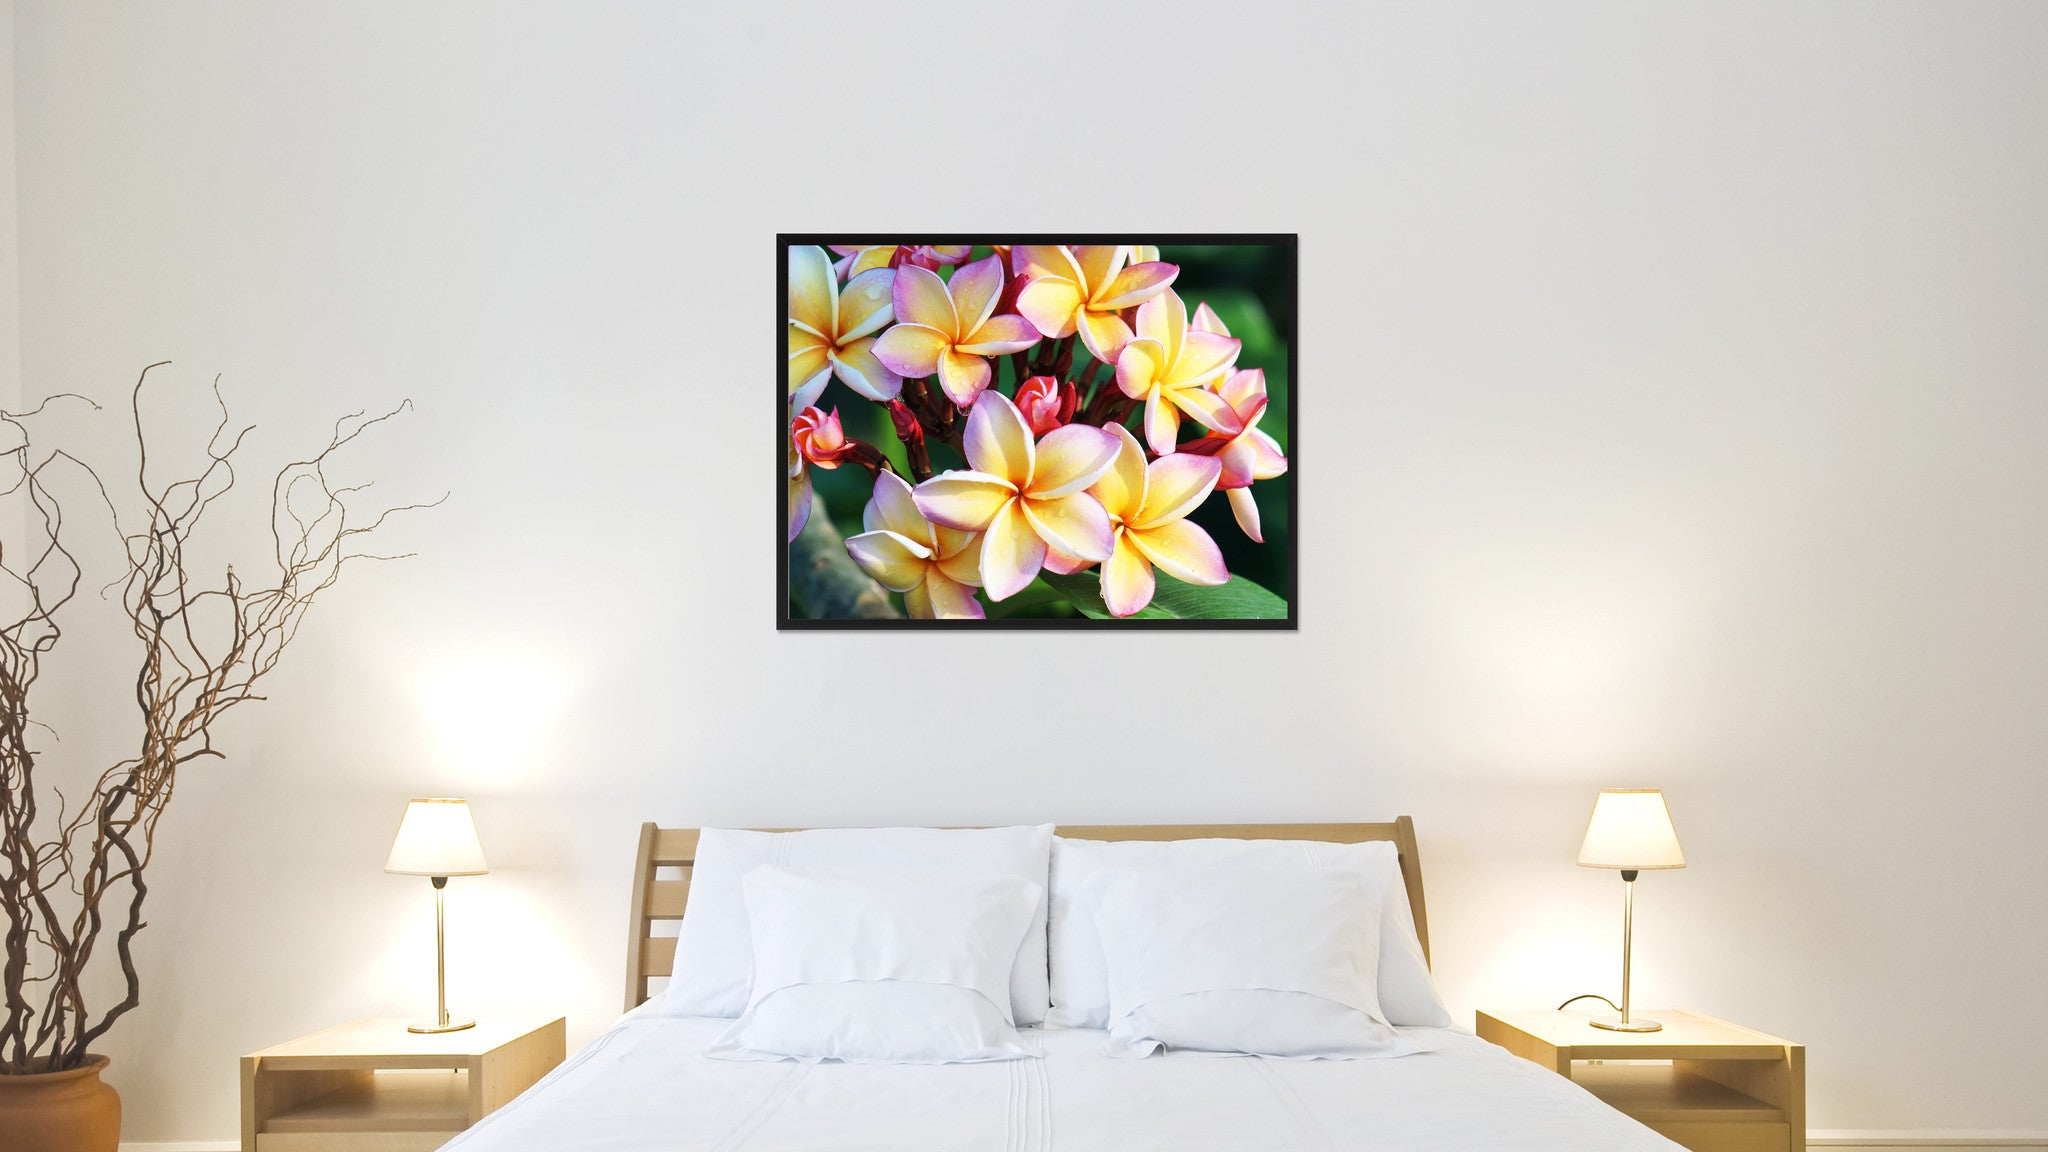 Plumeria Flower Framed Canvas Print Home Décor Wall Art